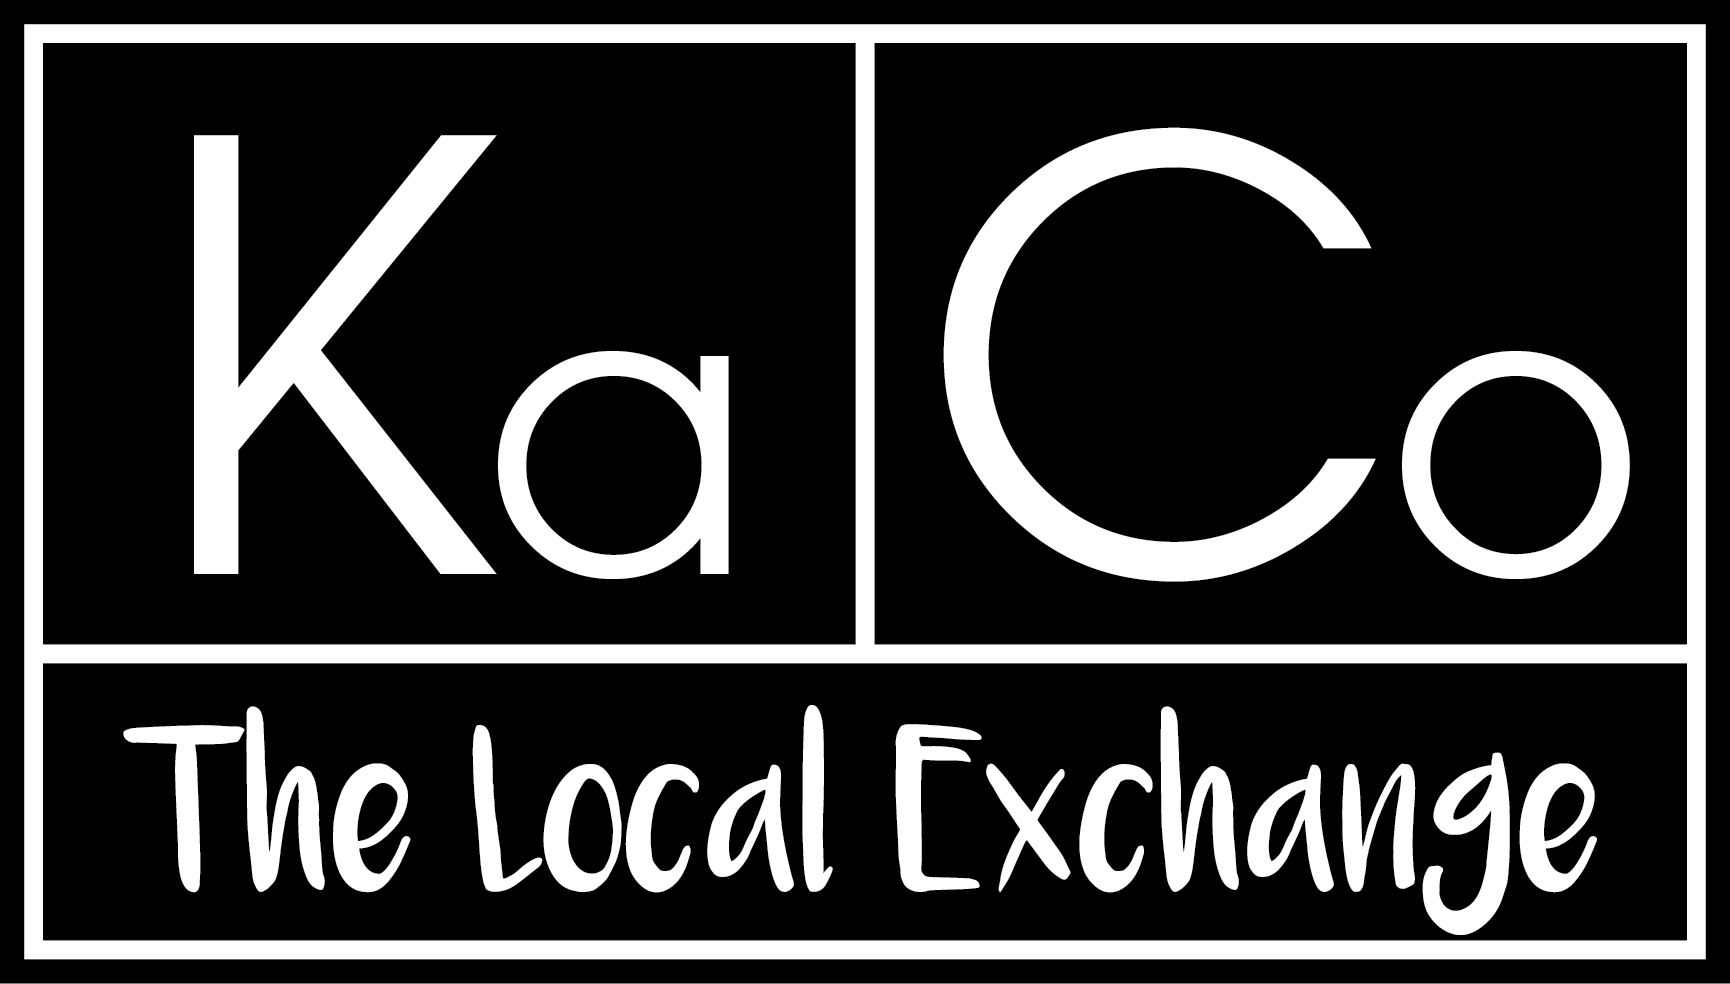 Ka Co | The Local Exchange